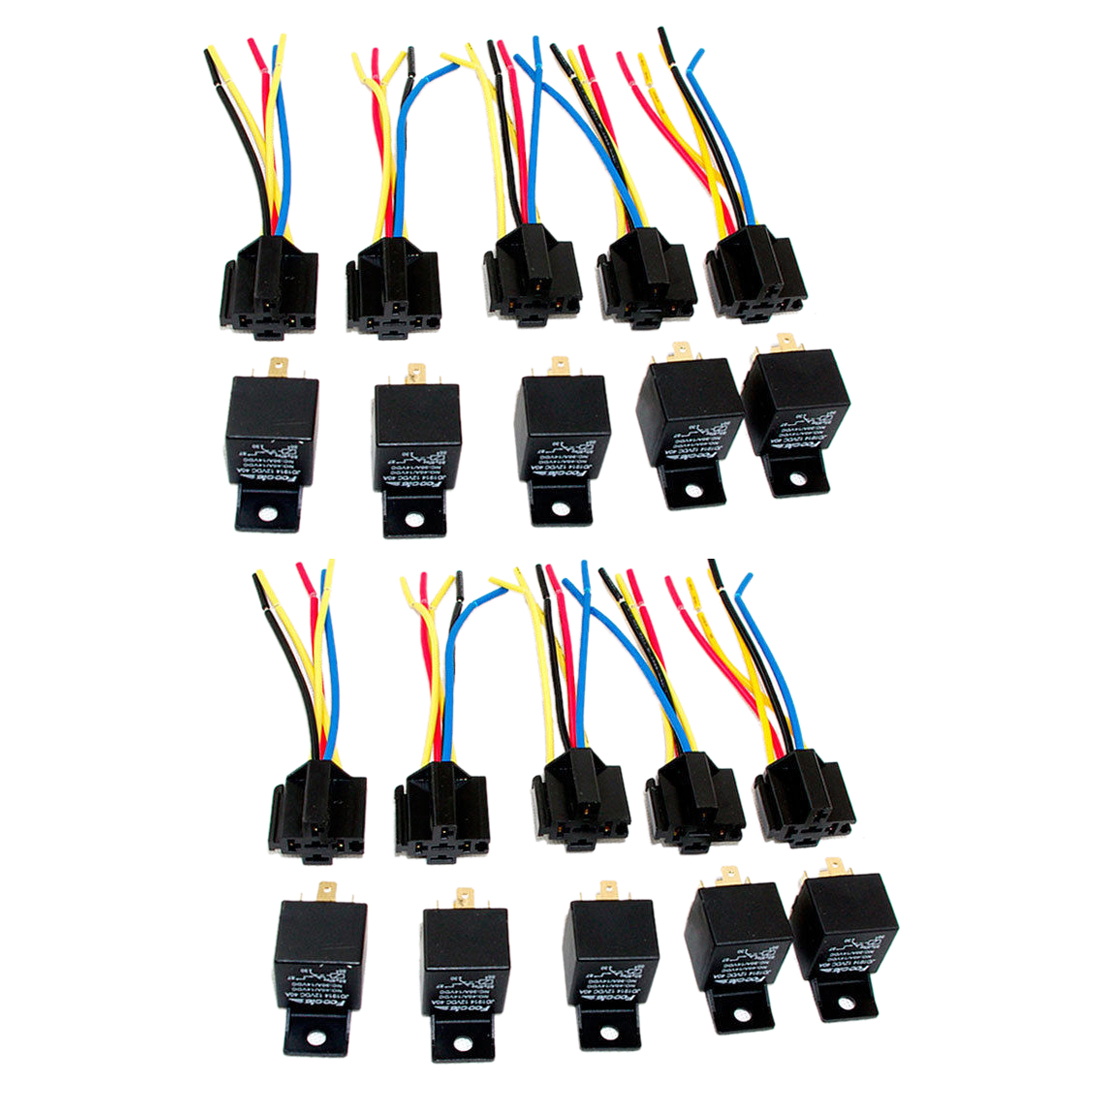 us $13 35 24% off cheapest lot10 new 12 volt 40 amp spdt automotive relay with wires harness socket in relays from home improvement on 12 volt heating wire 12 volt electric wire harness #9